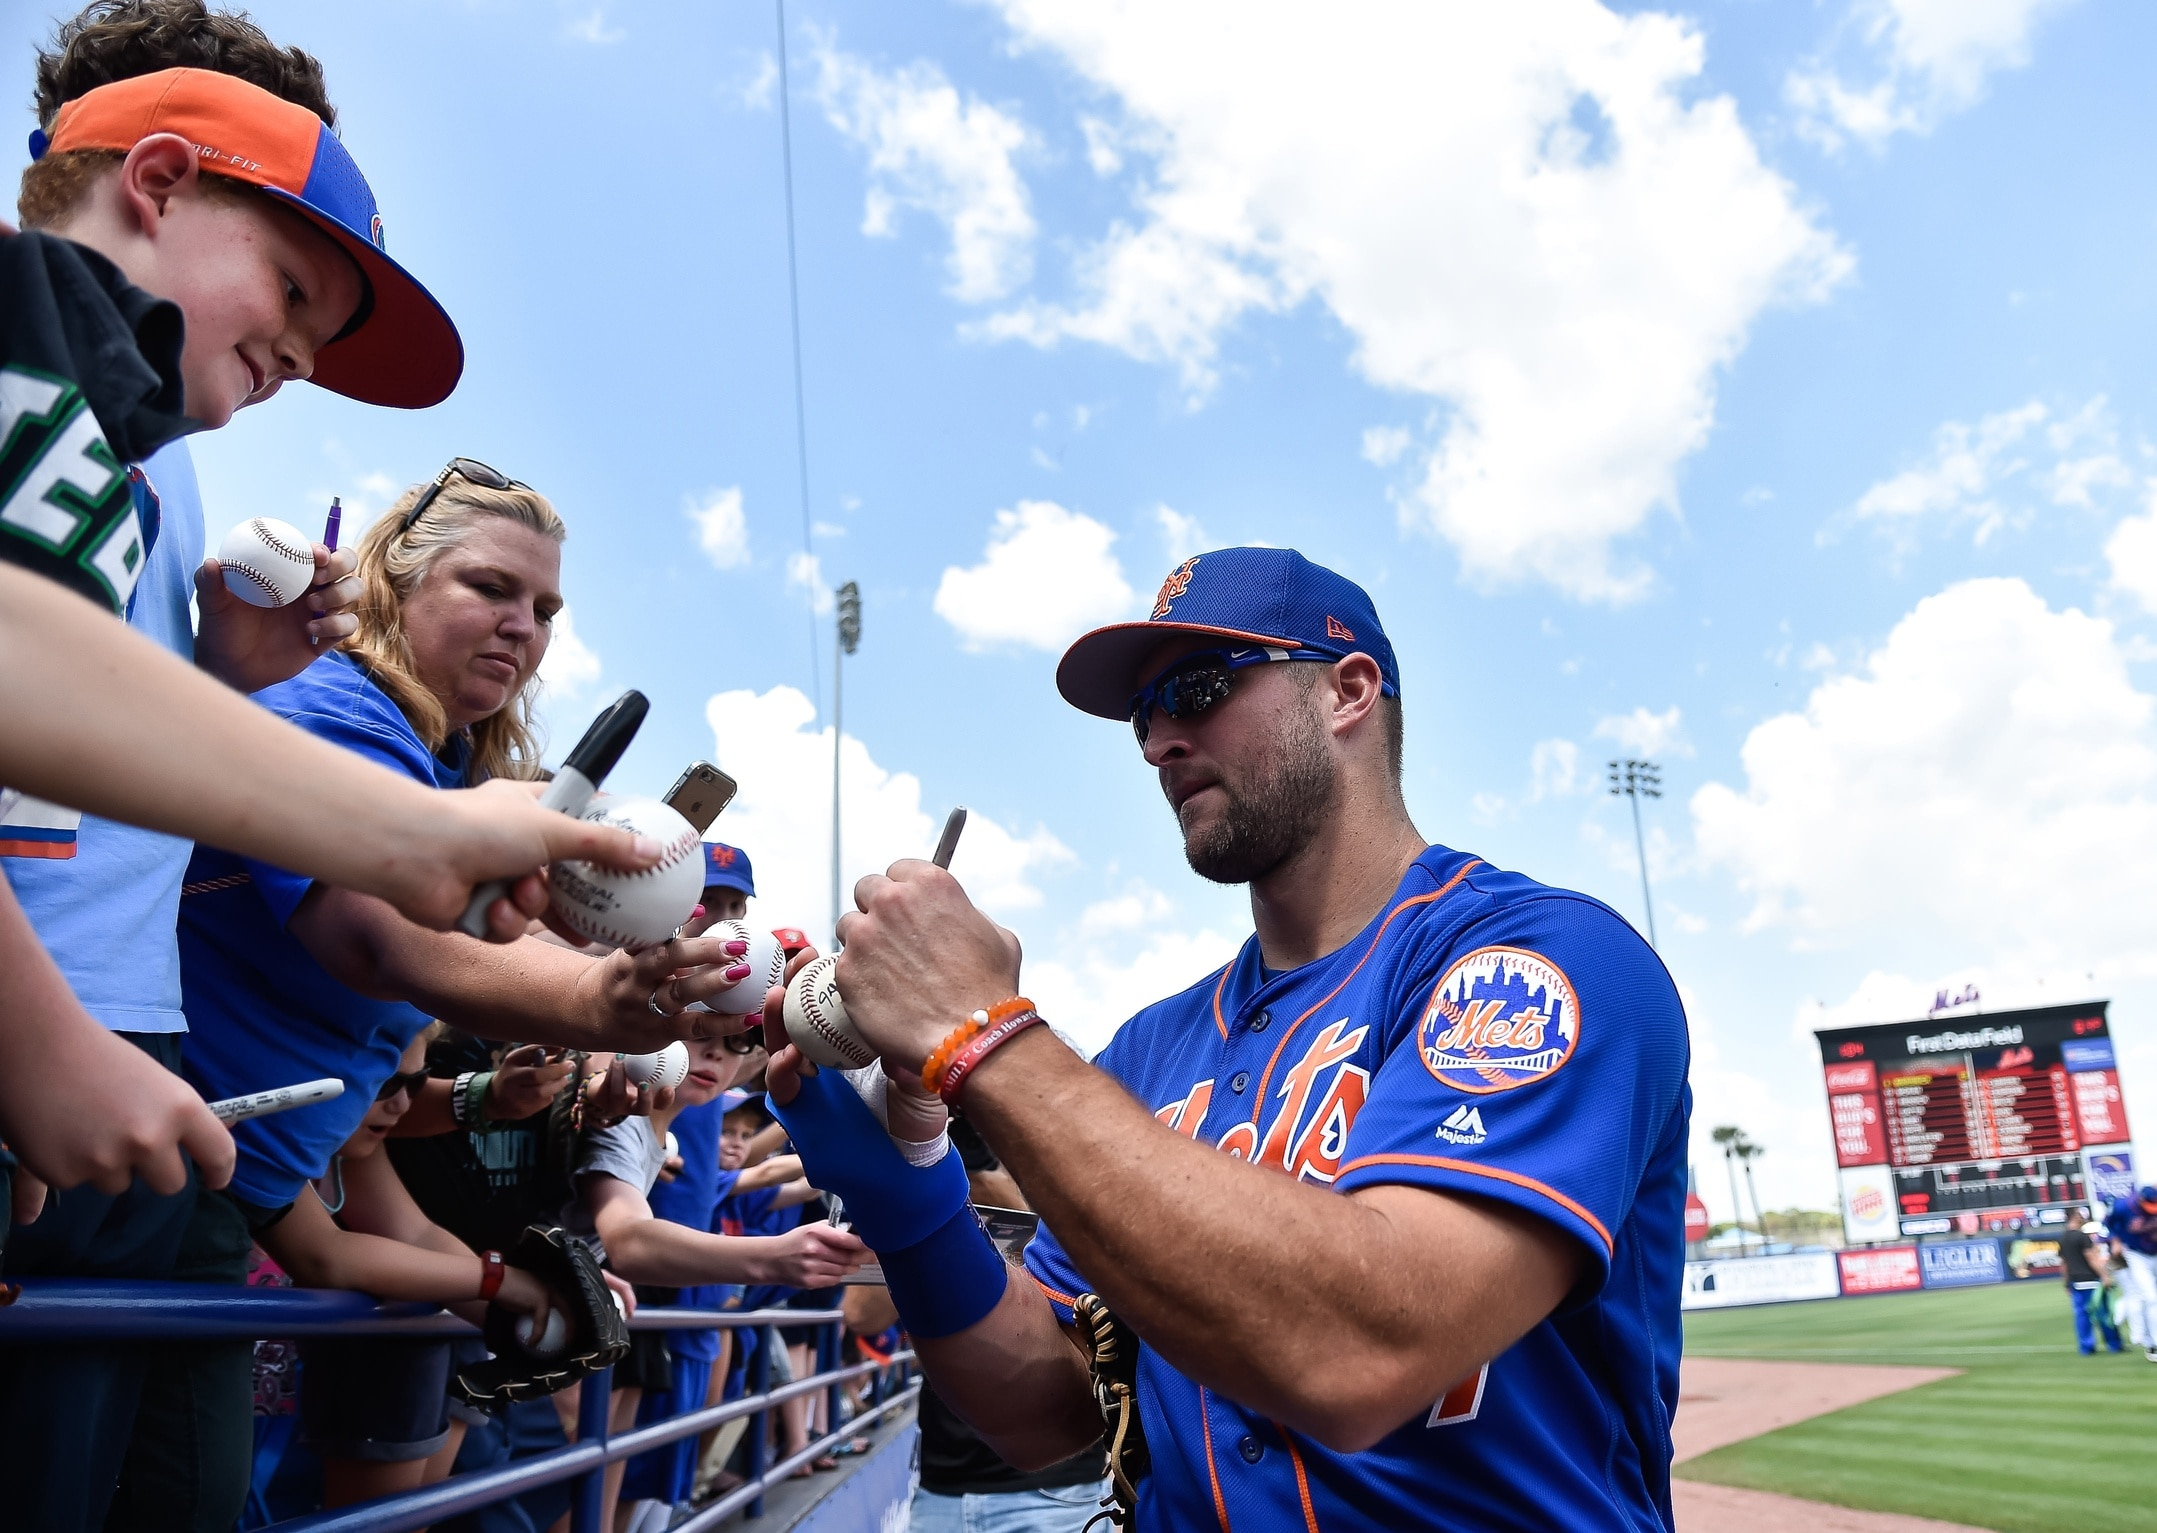 Mar 10, 2017; Port St. Lucie, FL, USA; New York Mets right fielder Tim Tebow (97) signs autographs before a spring training game against the Houston Astros at Tradition Field. Mandatory Credit: Steve Mitchell-USA TODAY Sports